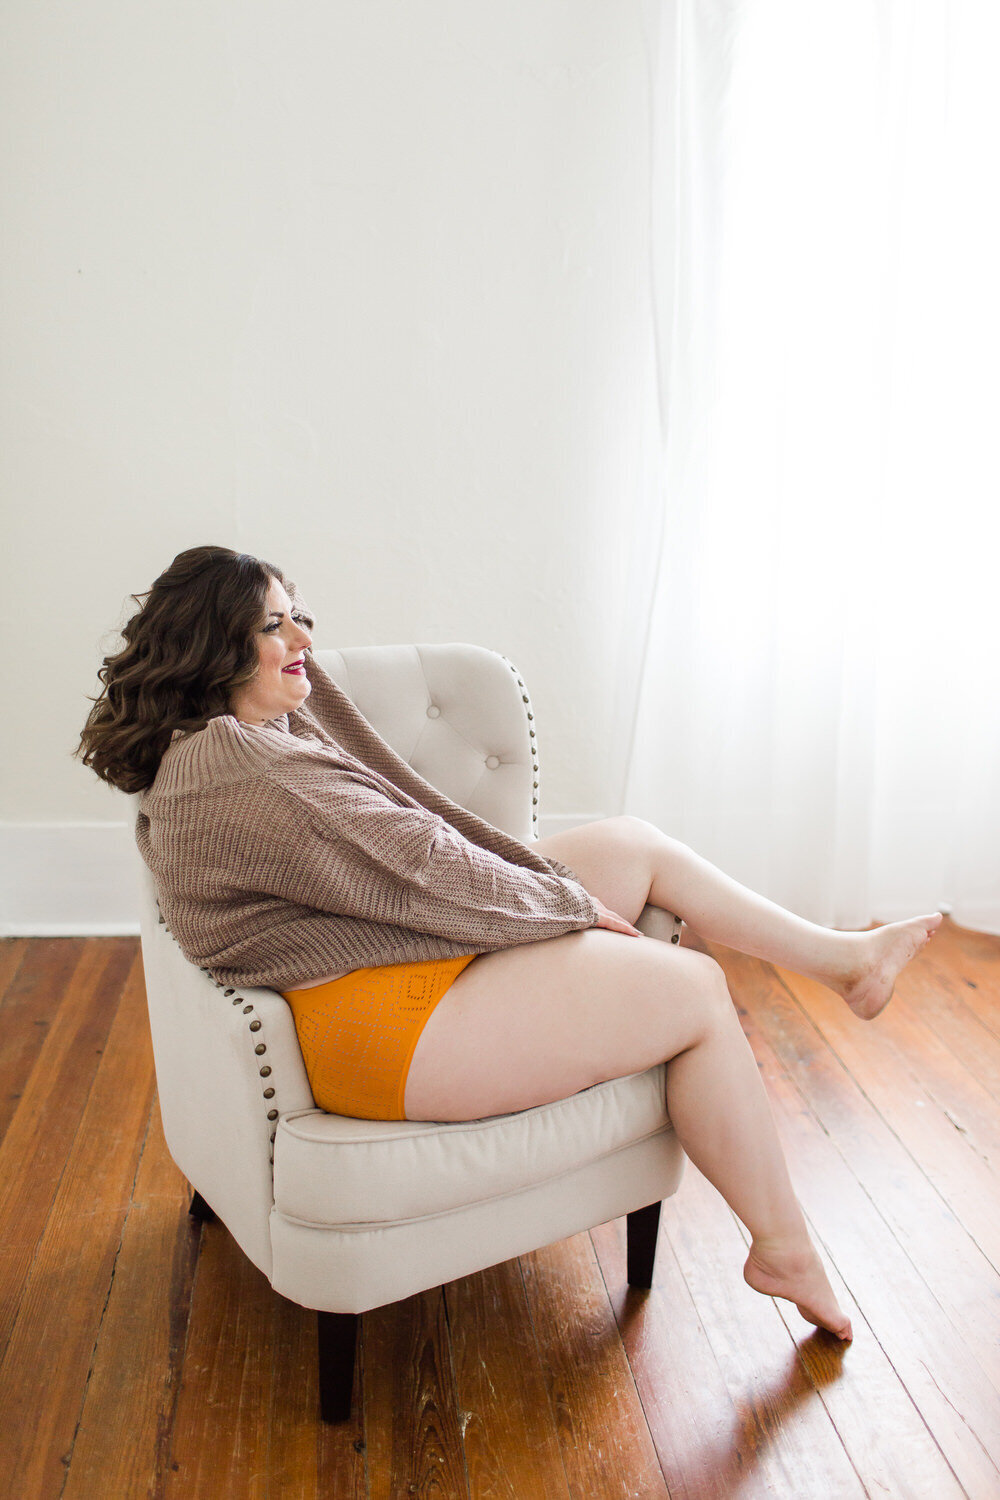 plus size boudoir photography experience